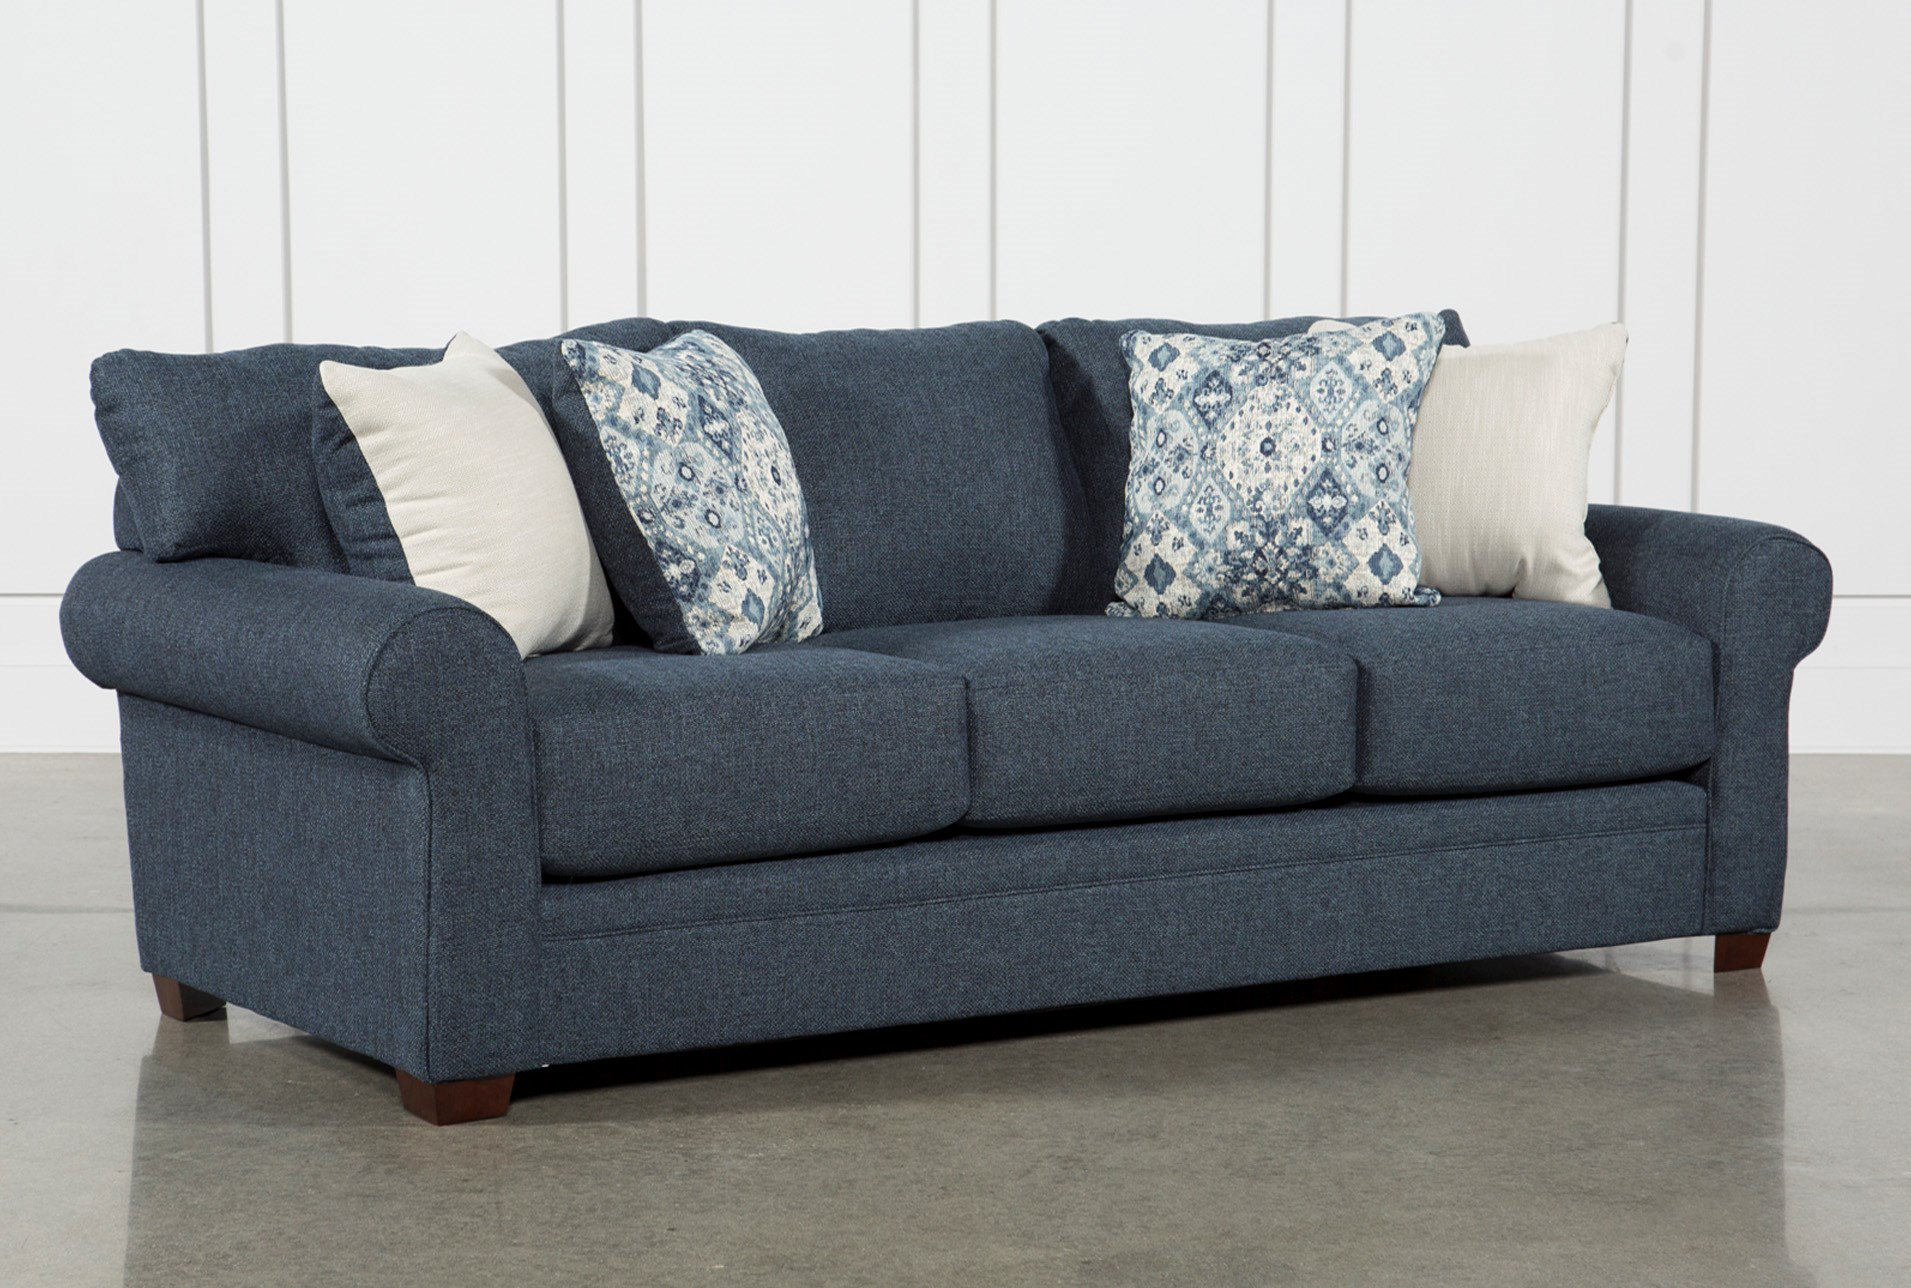 pleasurable designer sofa throws. Cameron Sofa Fabric Sofas  Couches Free Assembly with Delivery Living Spaces